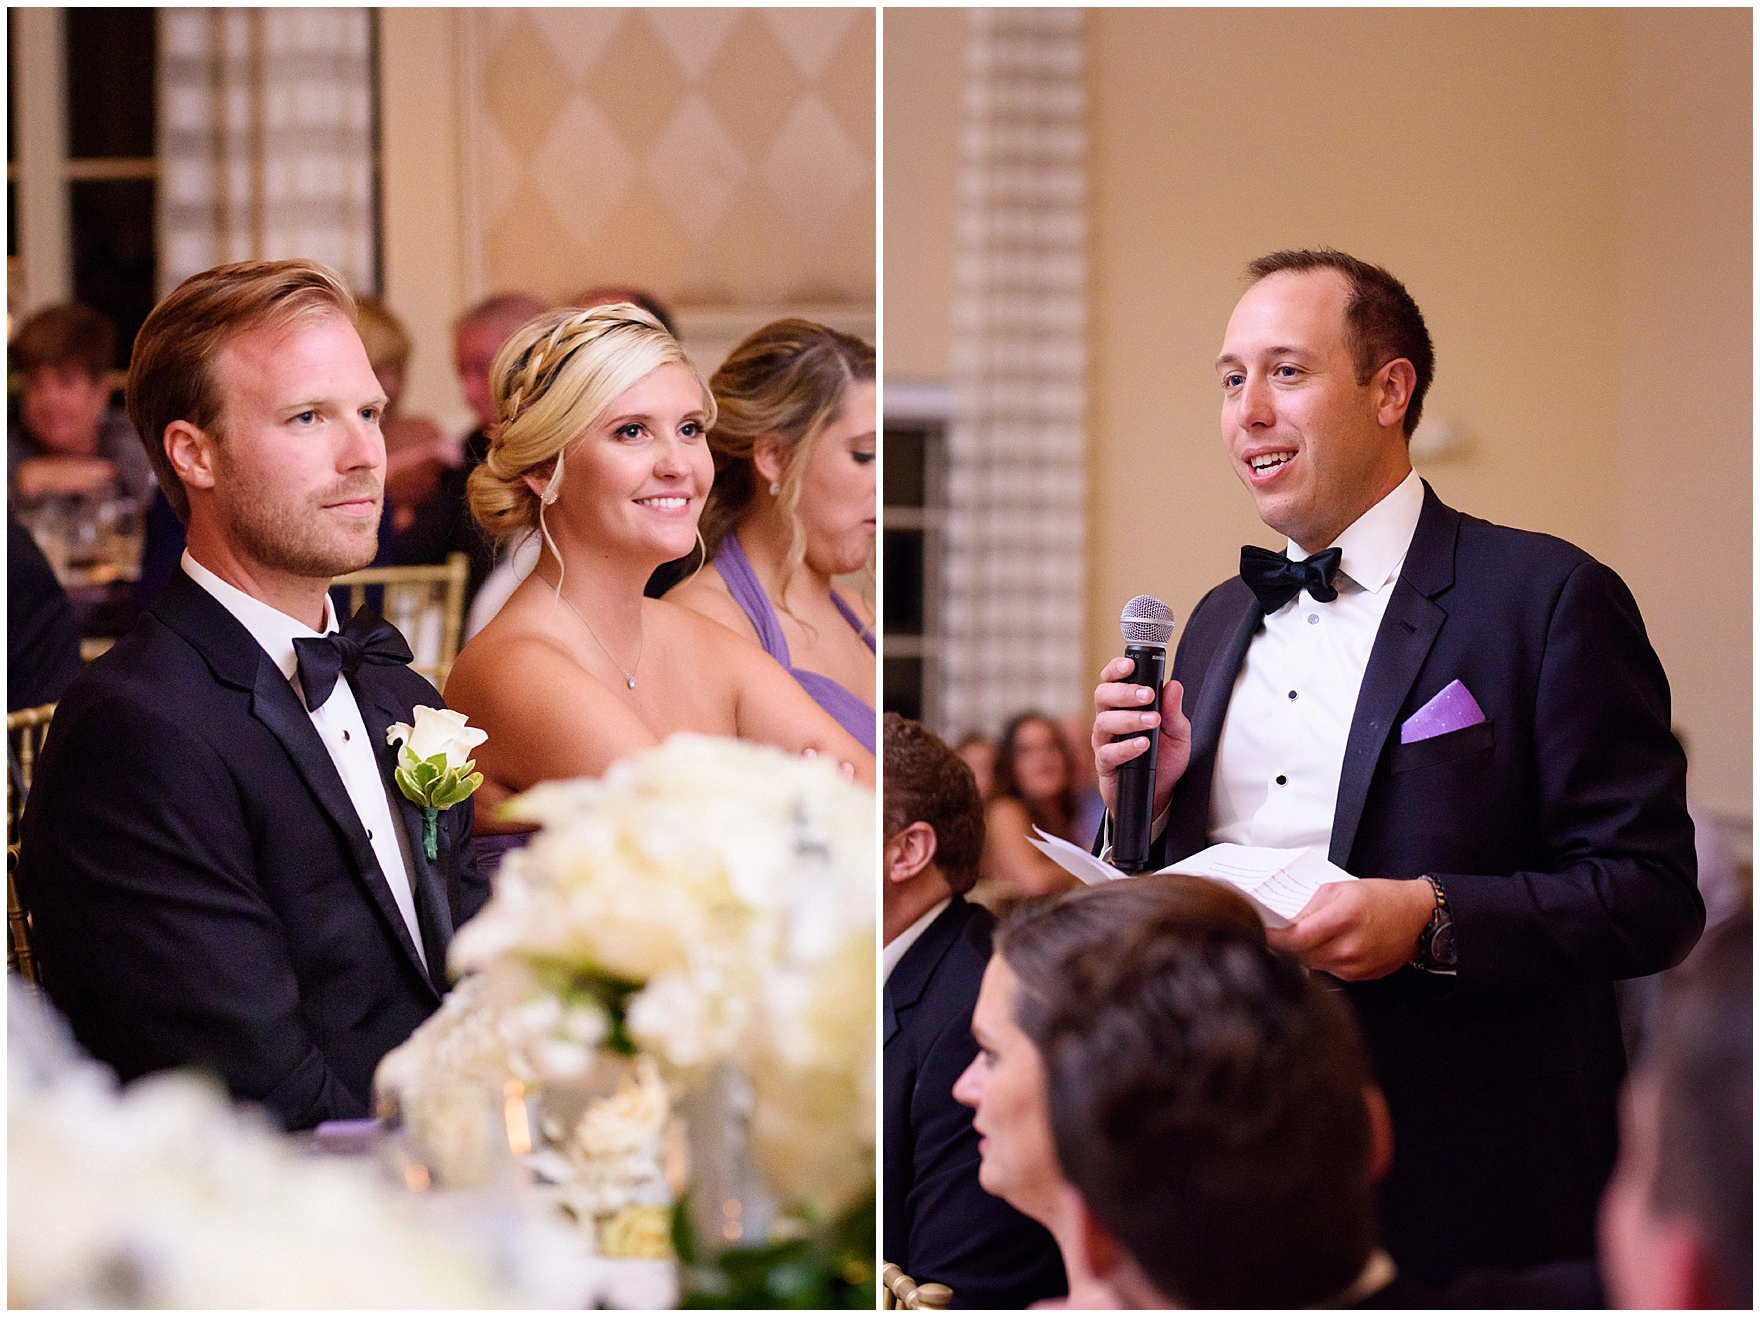 The best man gives a speech during a Glen Club Glenview Illinois wedding.